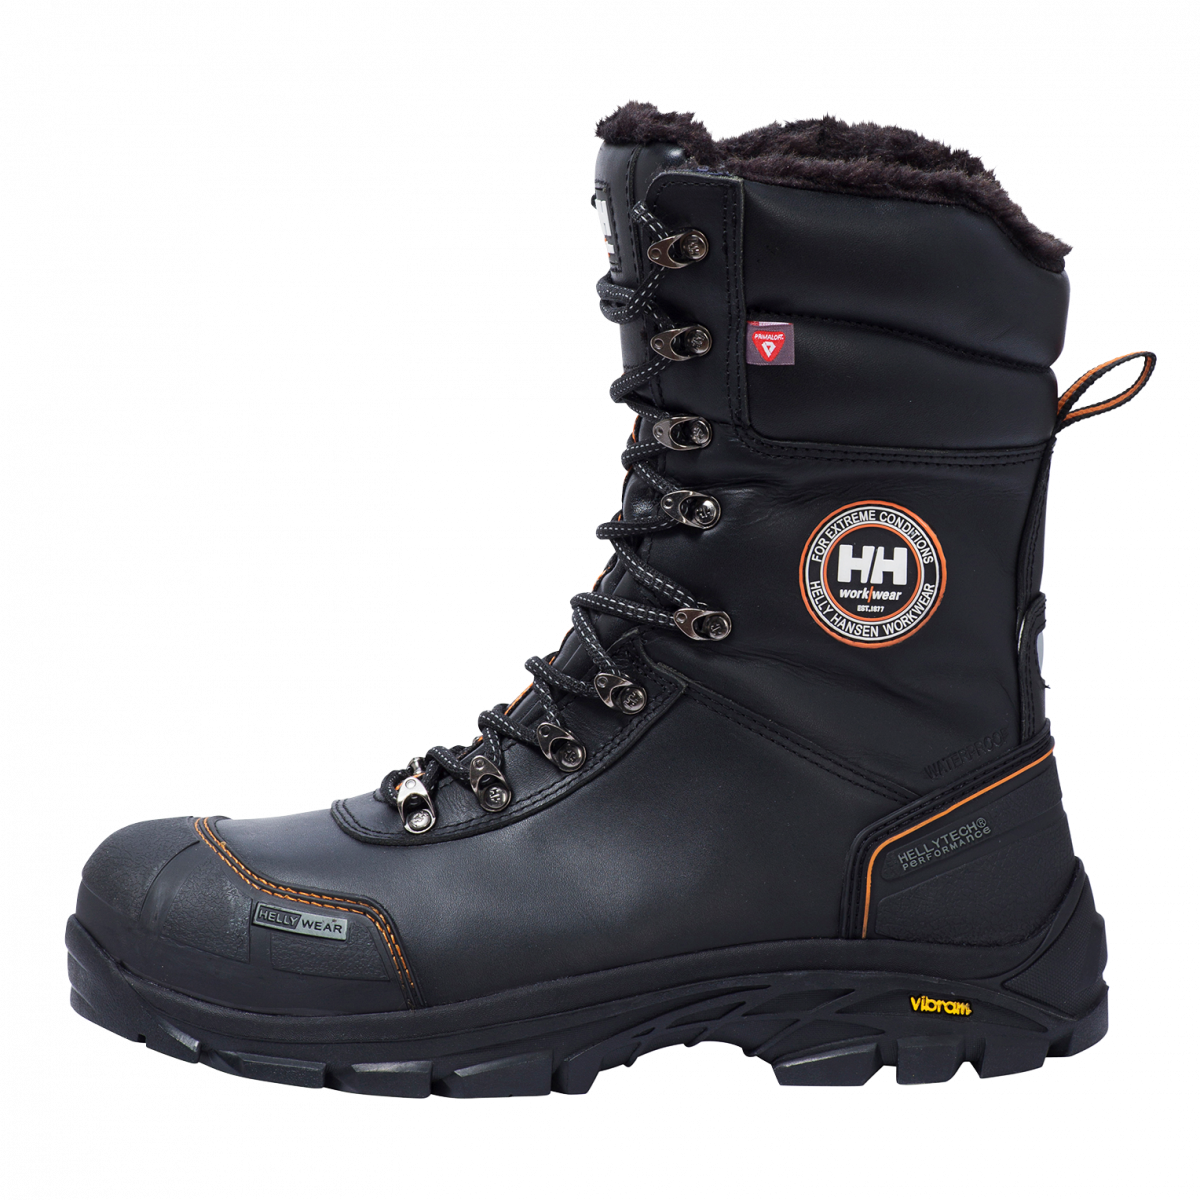 new products 9ca14 4efcf Helly Hansen Chelsea Helly Tech Winter Boot